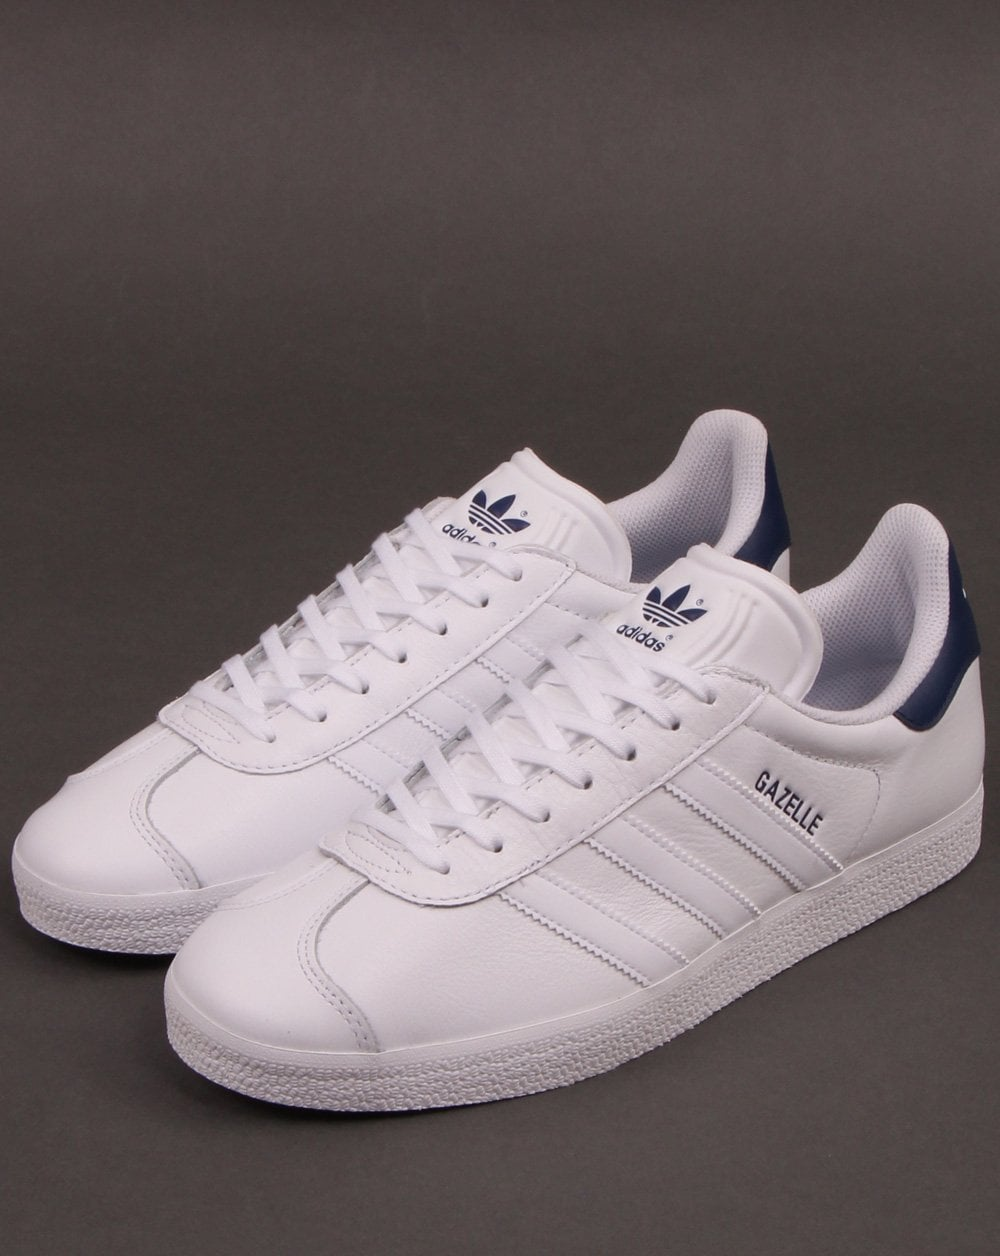 Noble unidad Colector  Adidas Gazelle Trainers White/White/Blue - Adidas At 80s Casual Classics